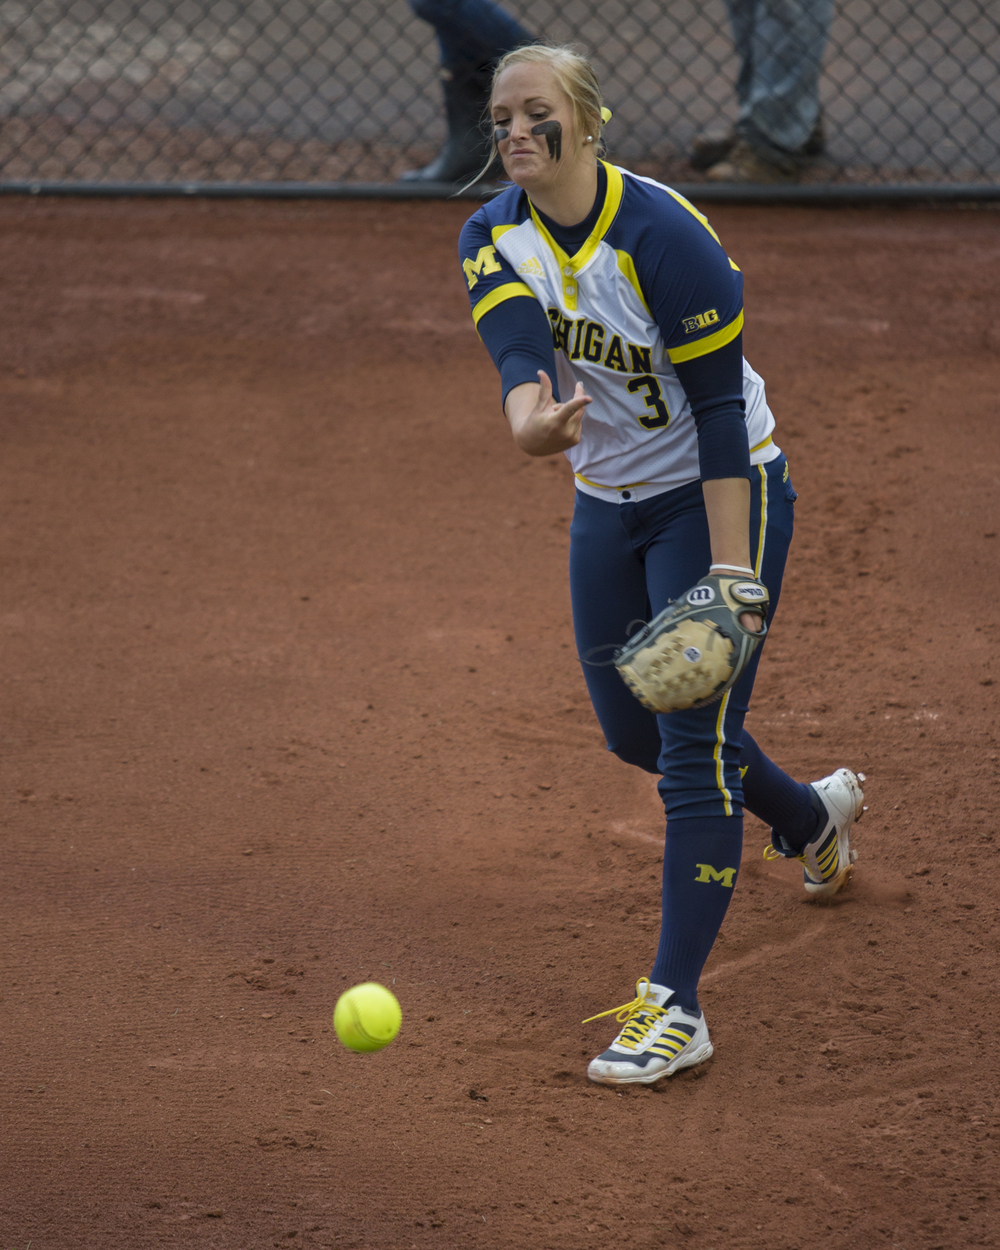 University of Michigan pitcher Megan Betsa warms up in the bullpen before the team's semifinal matchup with Penn State in the Big Ten Tournament at Beard Field on Saturday, May 14, 2016. Michigan won the game 7-1.